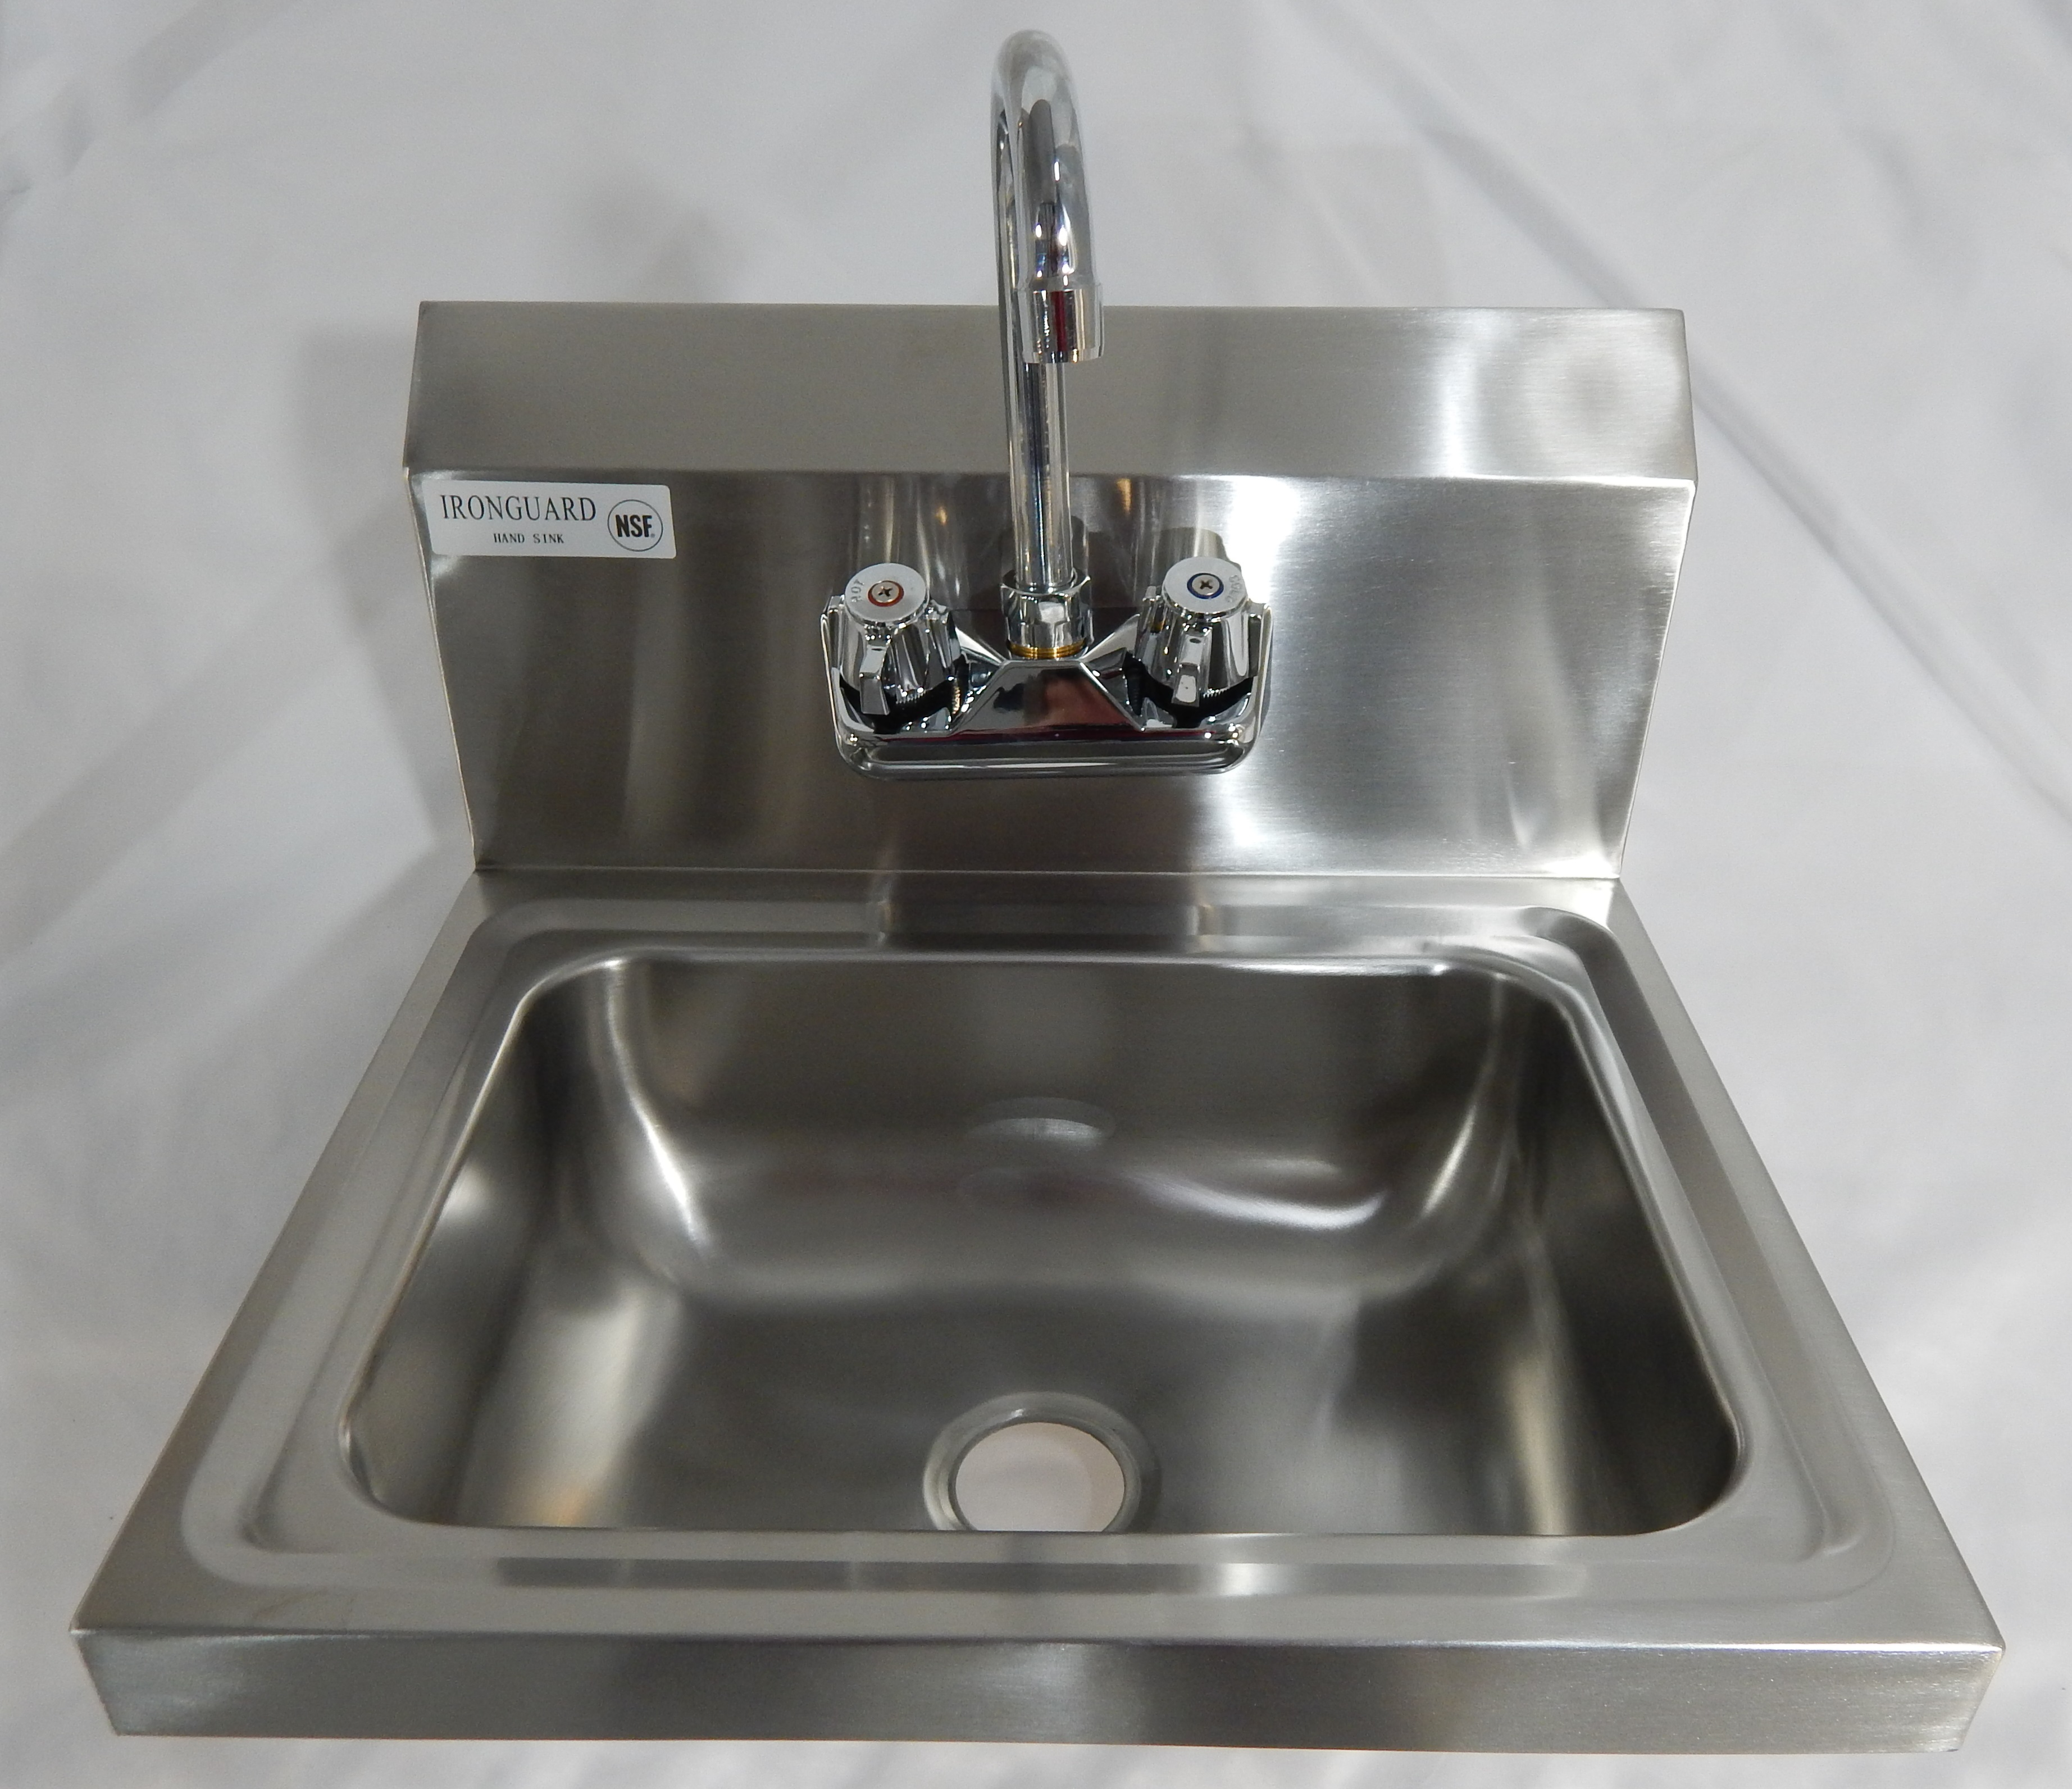 Iron Guard-Hand Sink 17.5 X 15 Wall Mount SS with Faucet | Public Kitchen Supply